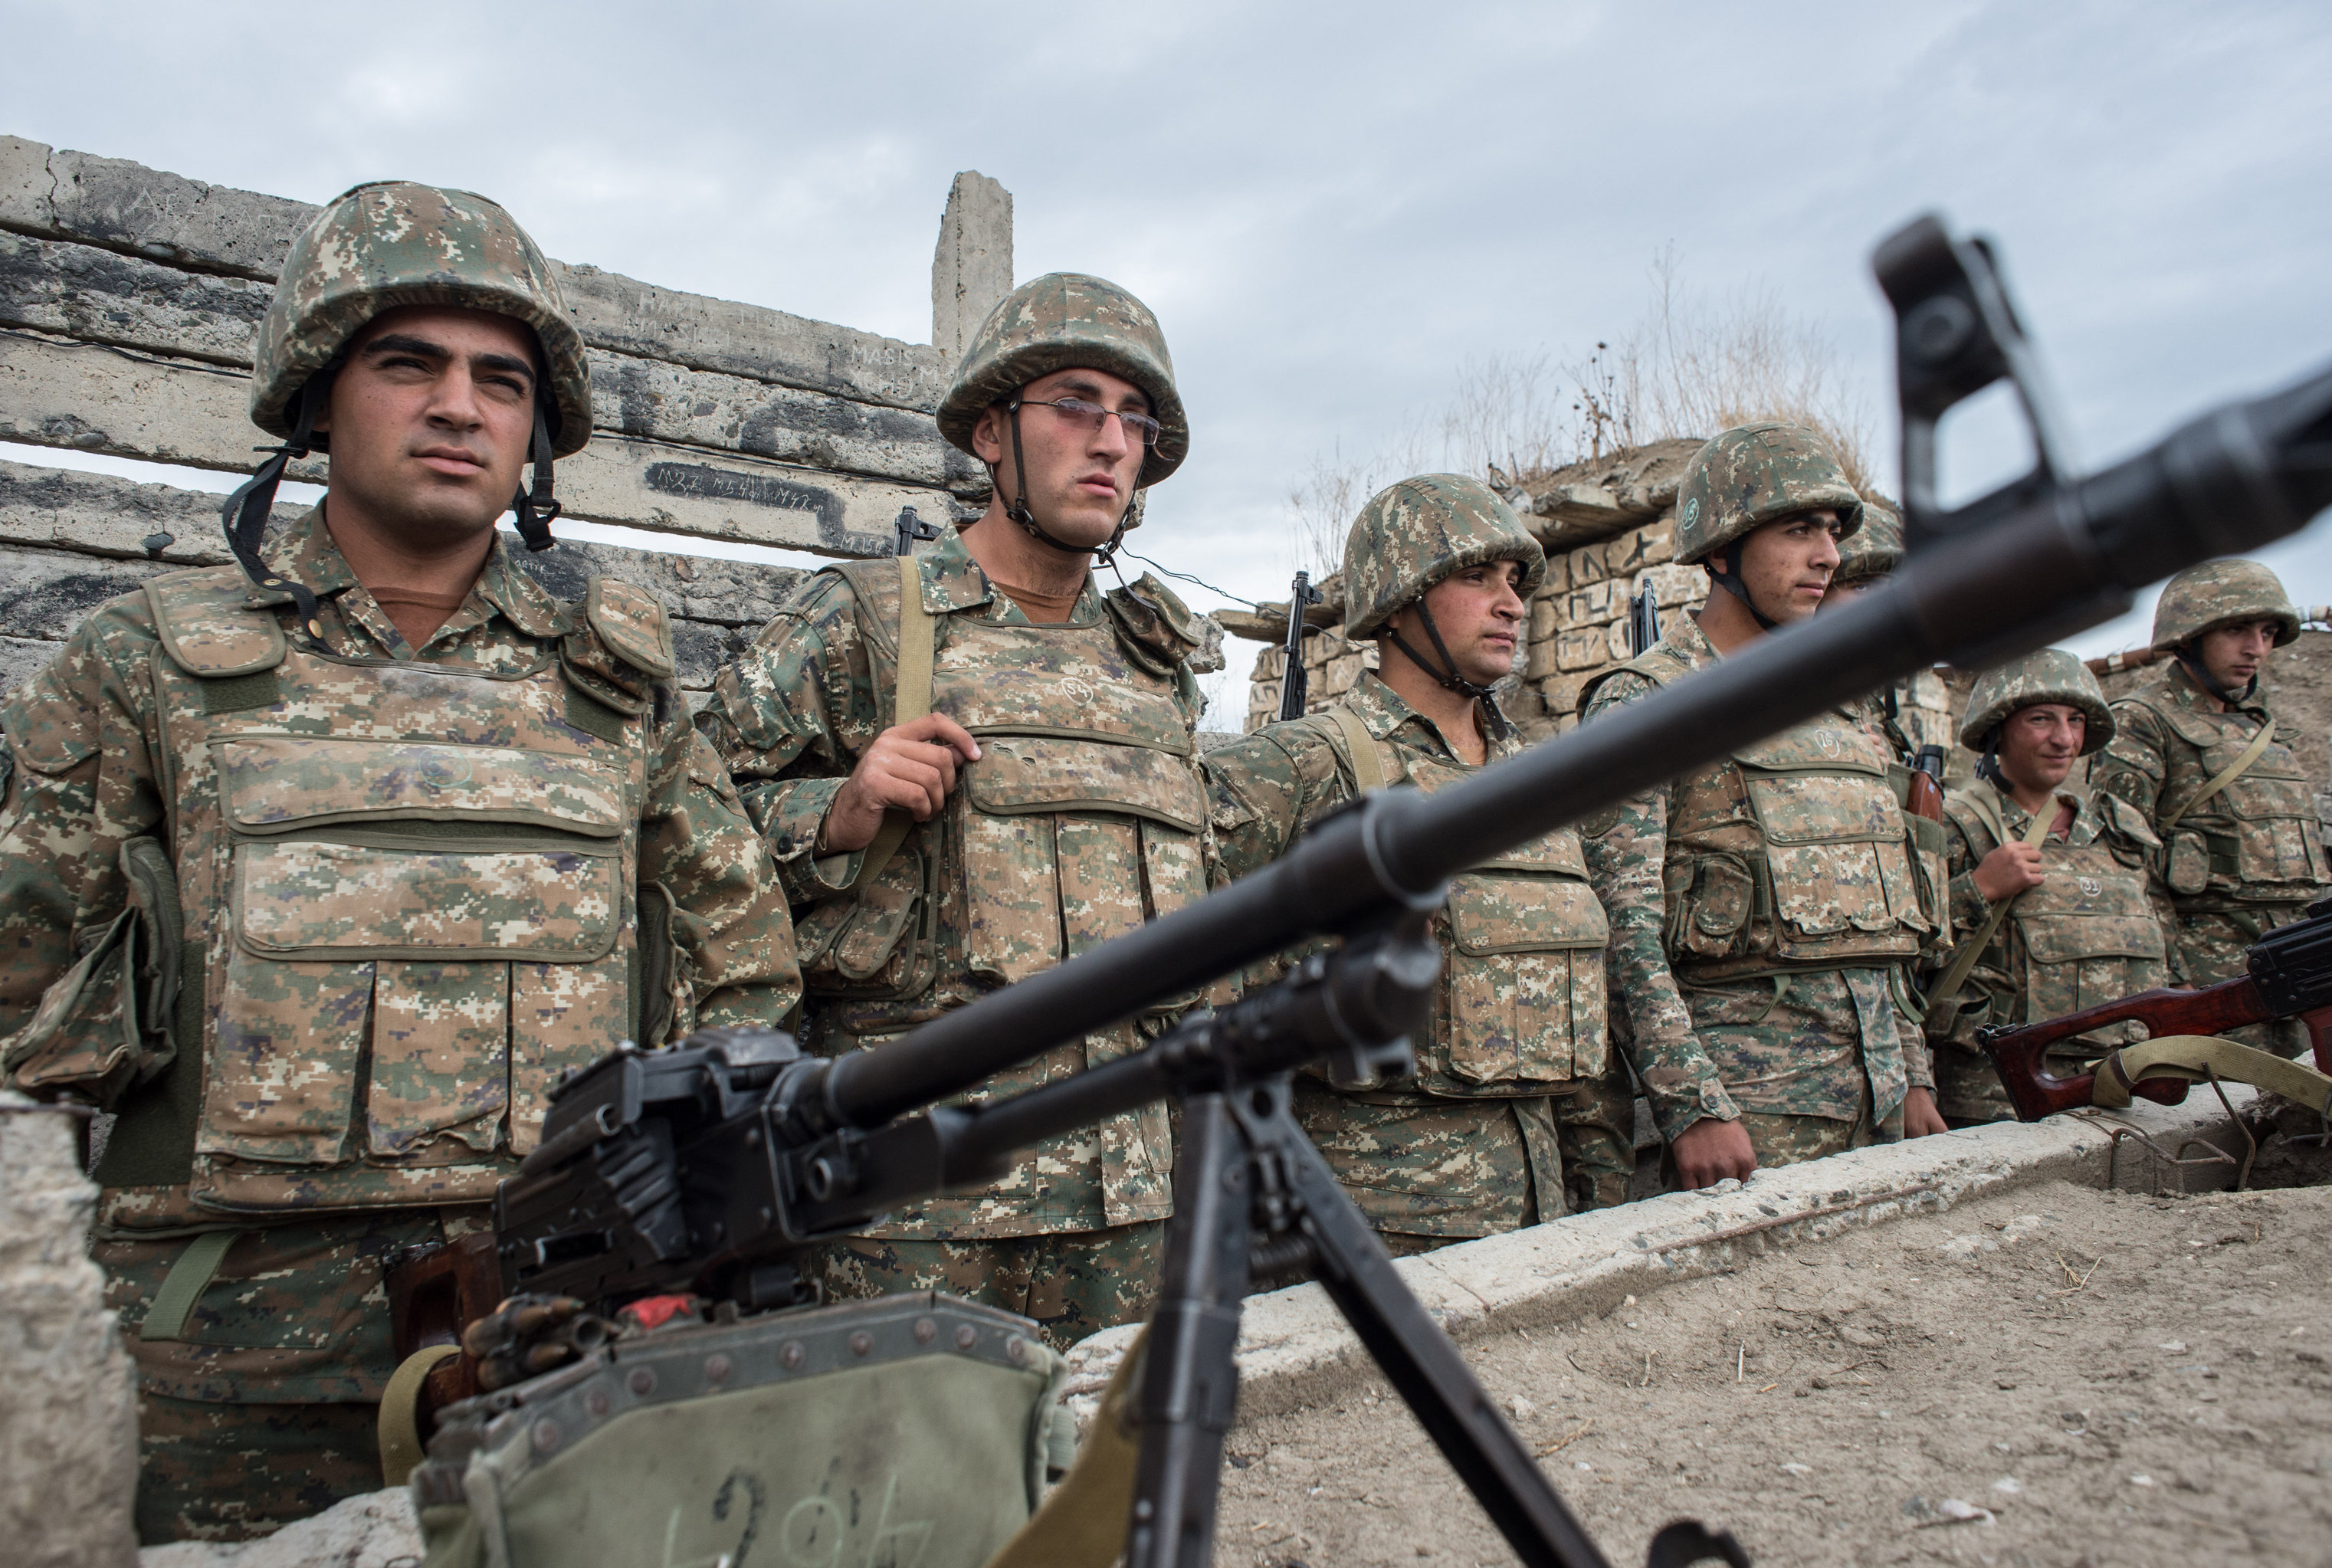 Troops in the zone of the Nagorno-Karabakh conflict